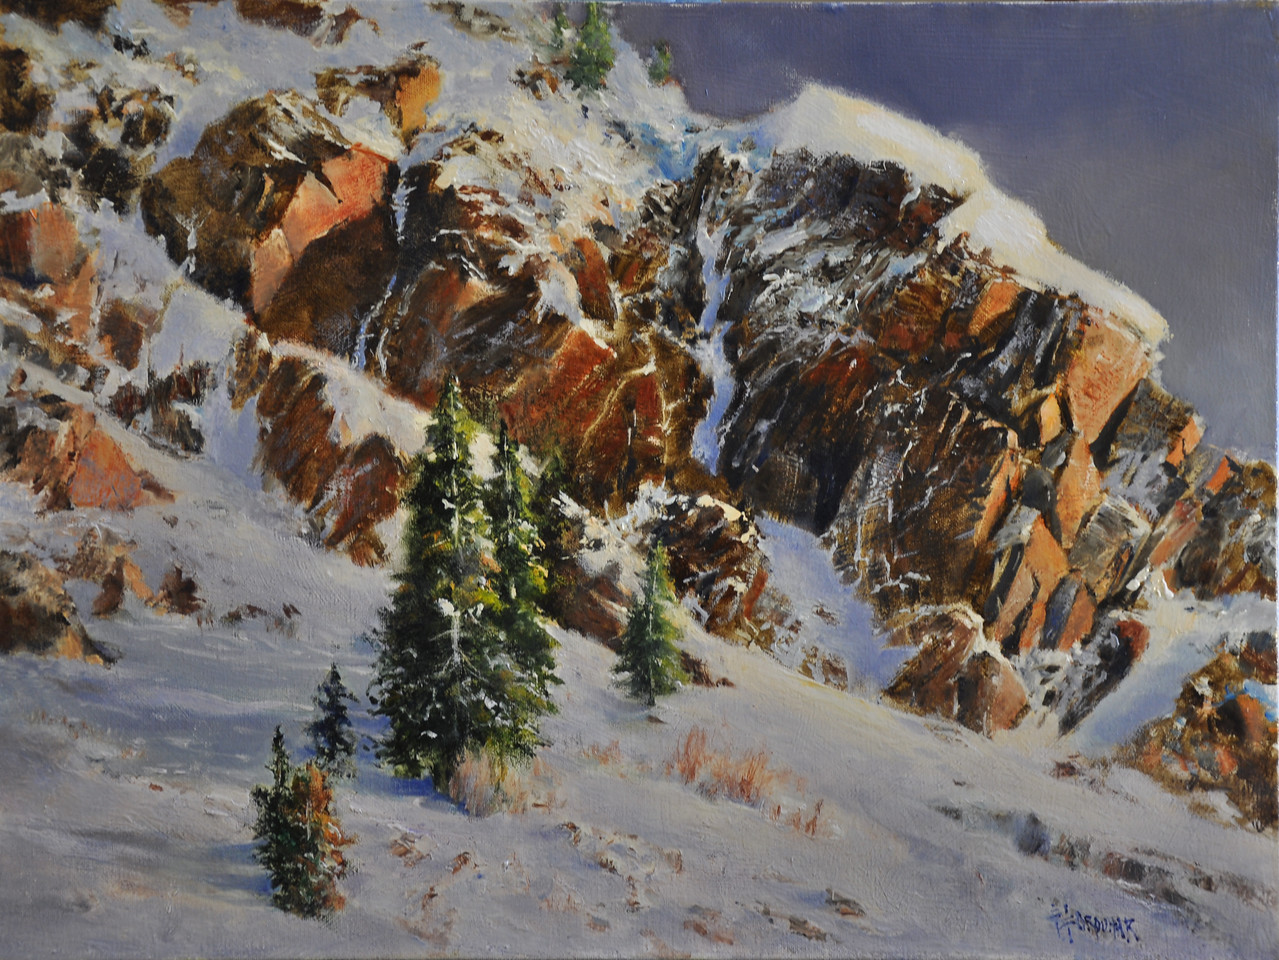 SOLD;  Snow and Rock (Little Cottonwood Canyon, UT) Oil on Linen 18x24 SOLD   Broken face of hard rock hit by he evening sun baked How soft and cool  the snow feels in the warmth of setting sun